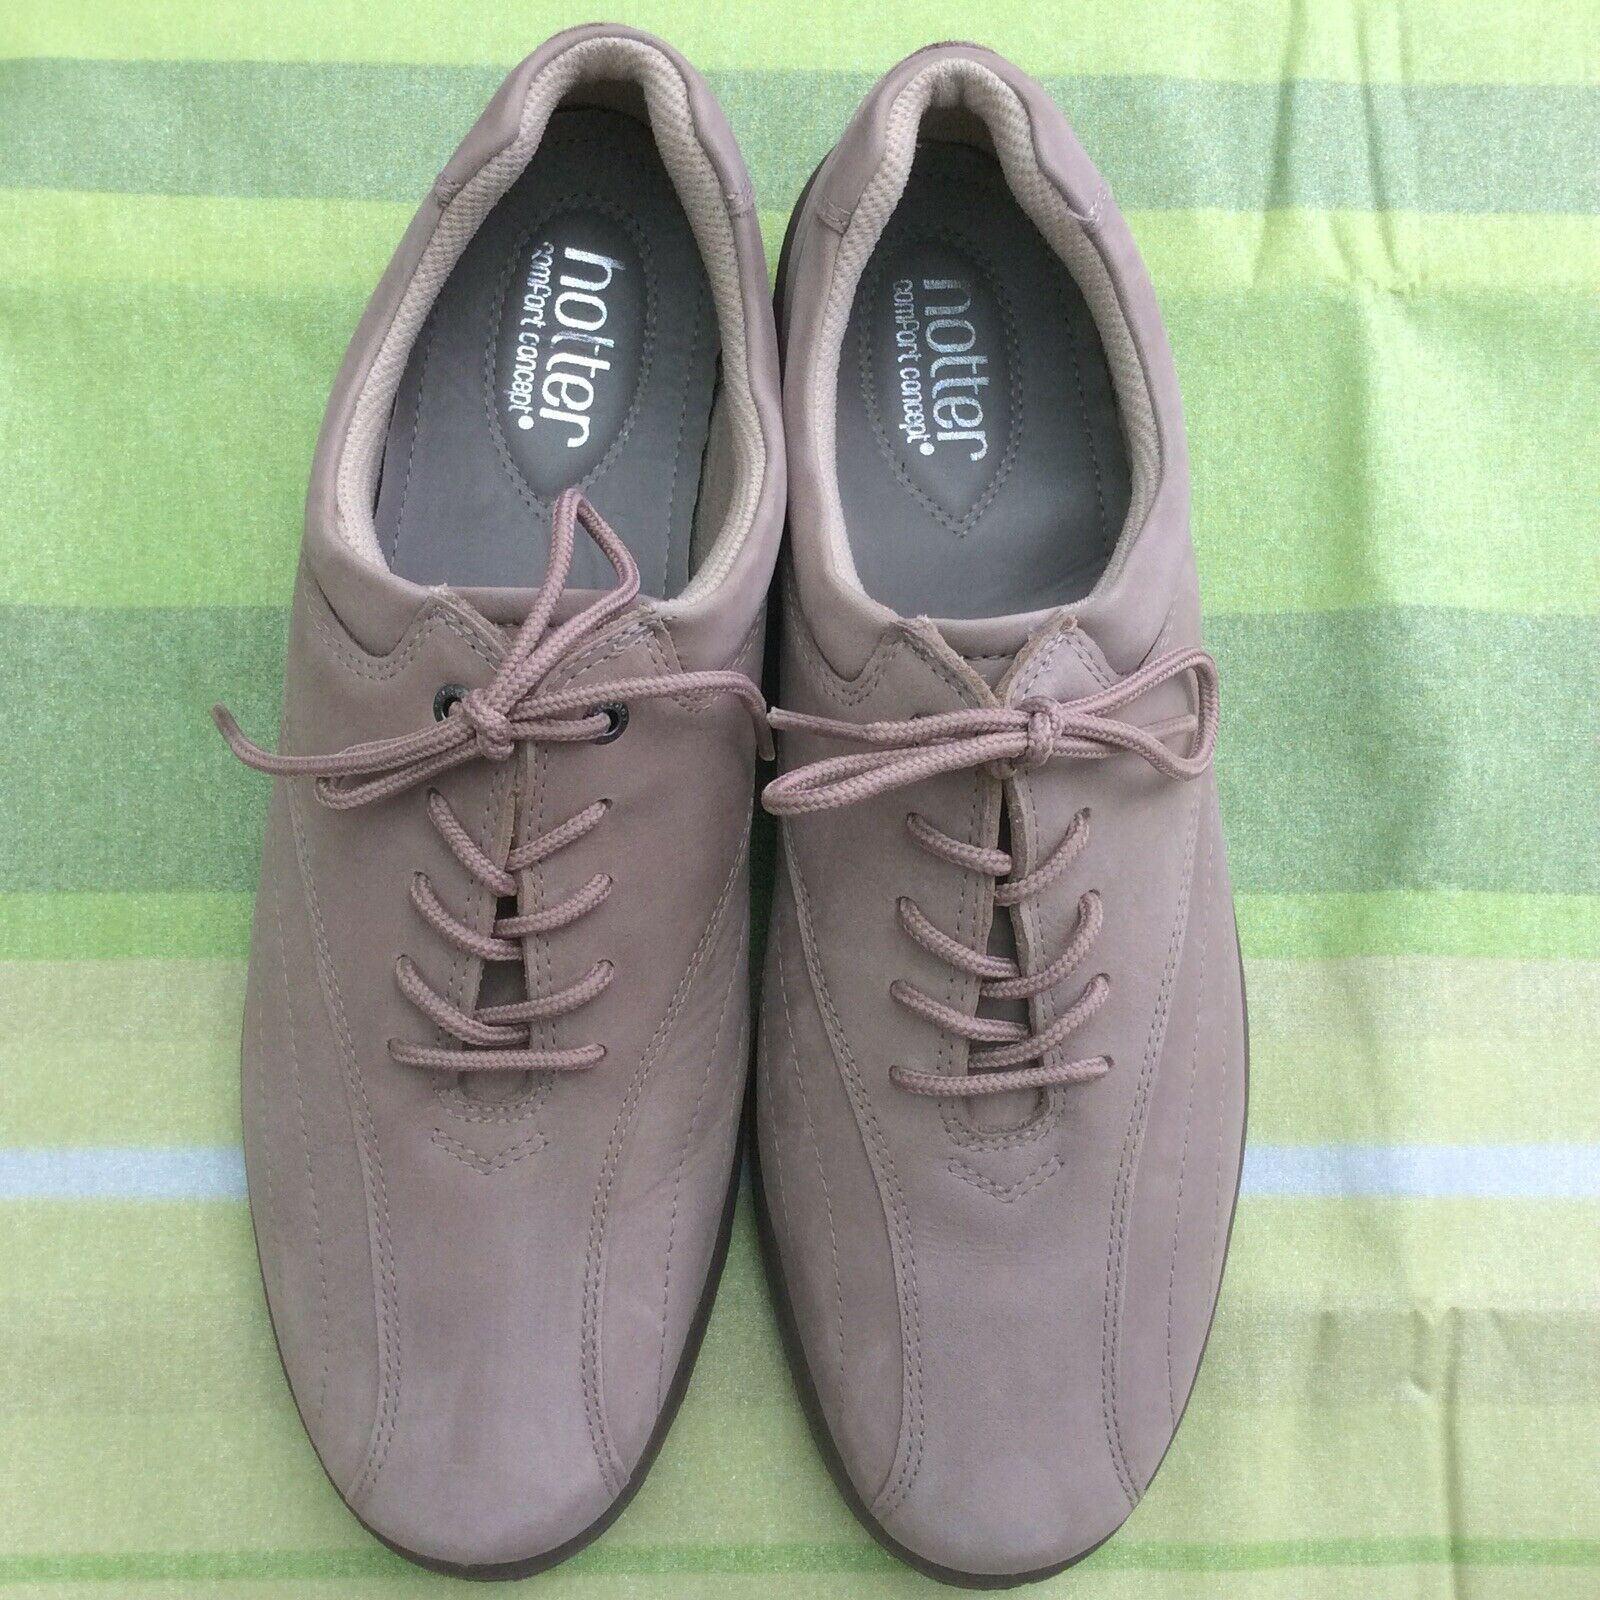 Brand New Hotter Comfort Concept Lace Up Nubuck Leather Shoes Uk 4 Cheapest Price From Our Site Women's Shoes